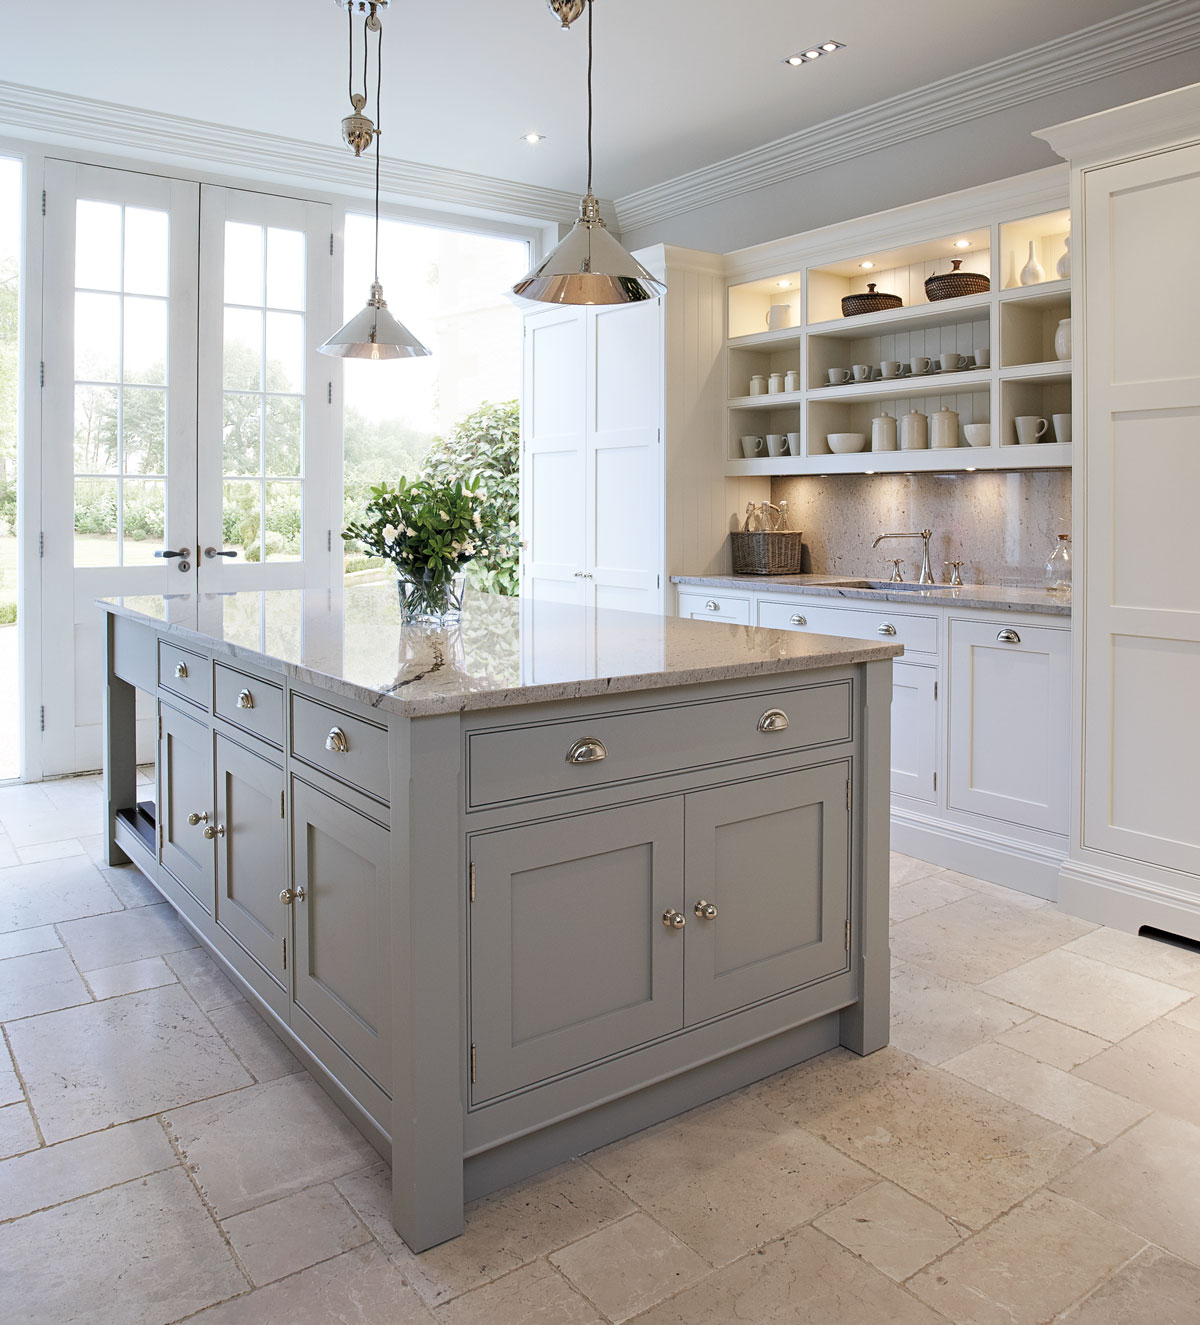 Fullsize Of Islands In The Kitchen